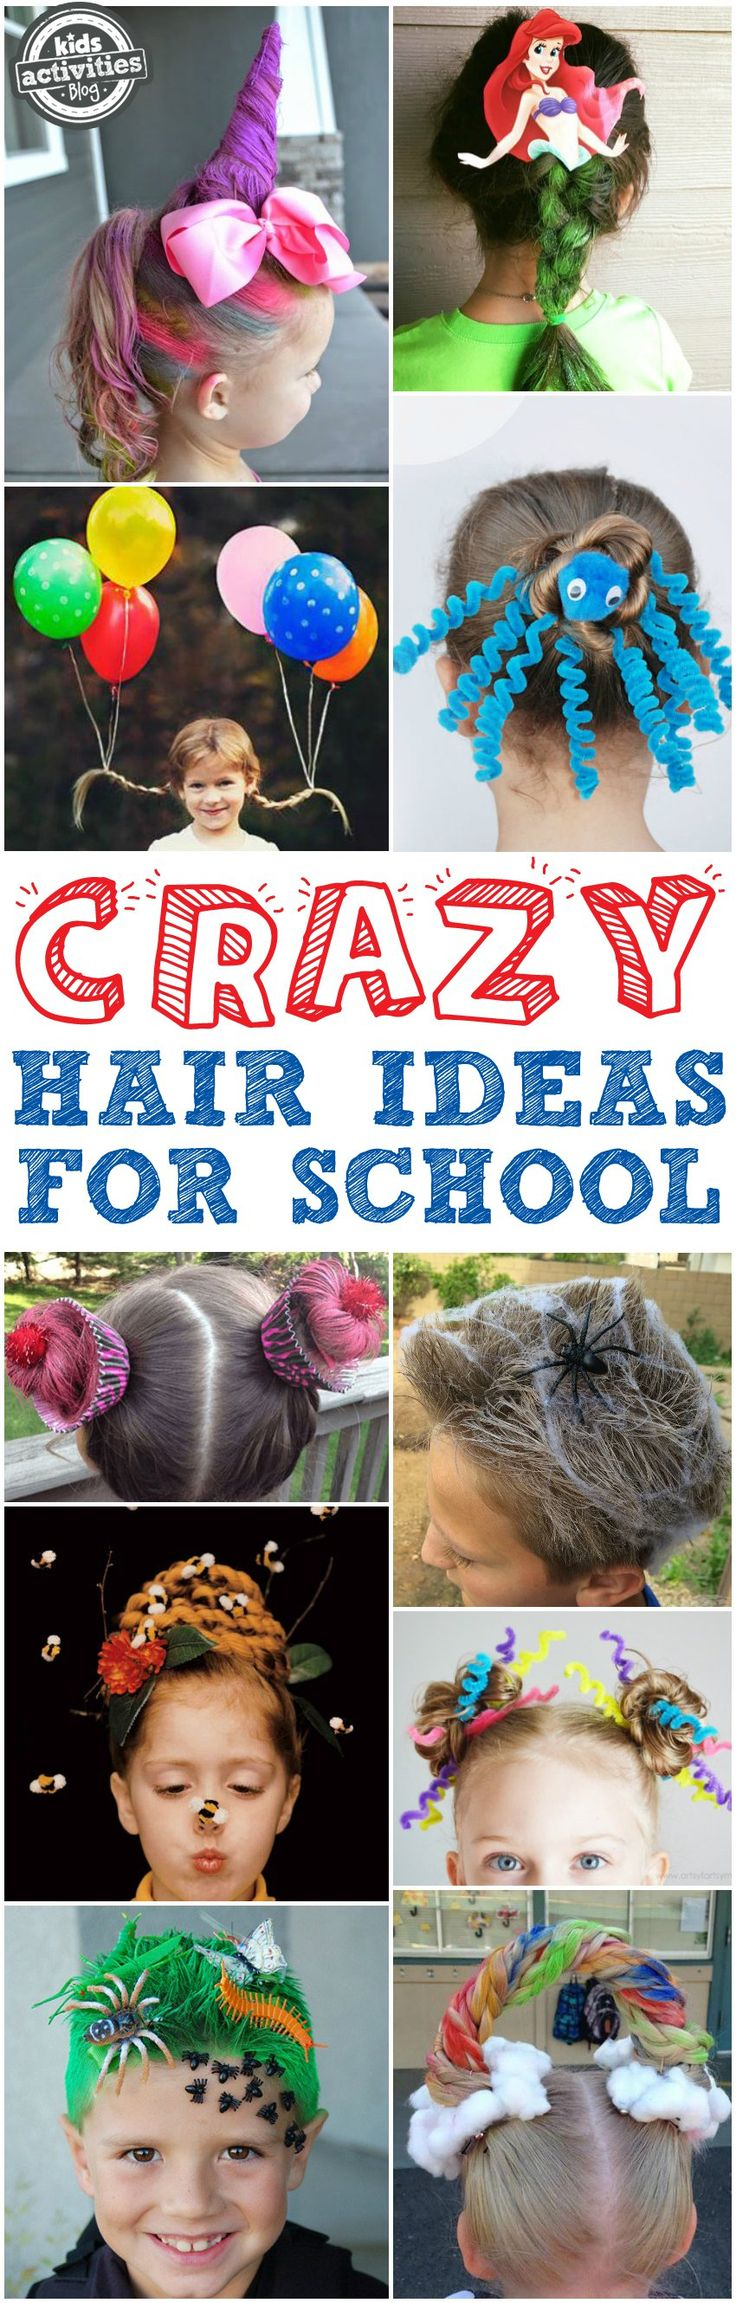 You've got to see these crazy hair day ideas for school! From unicorns to mermaids to bug-infested grass, we've found some of the most creative and craziest ideas out there! via @hollyhomer